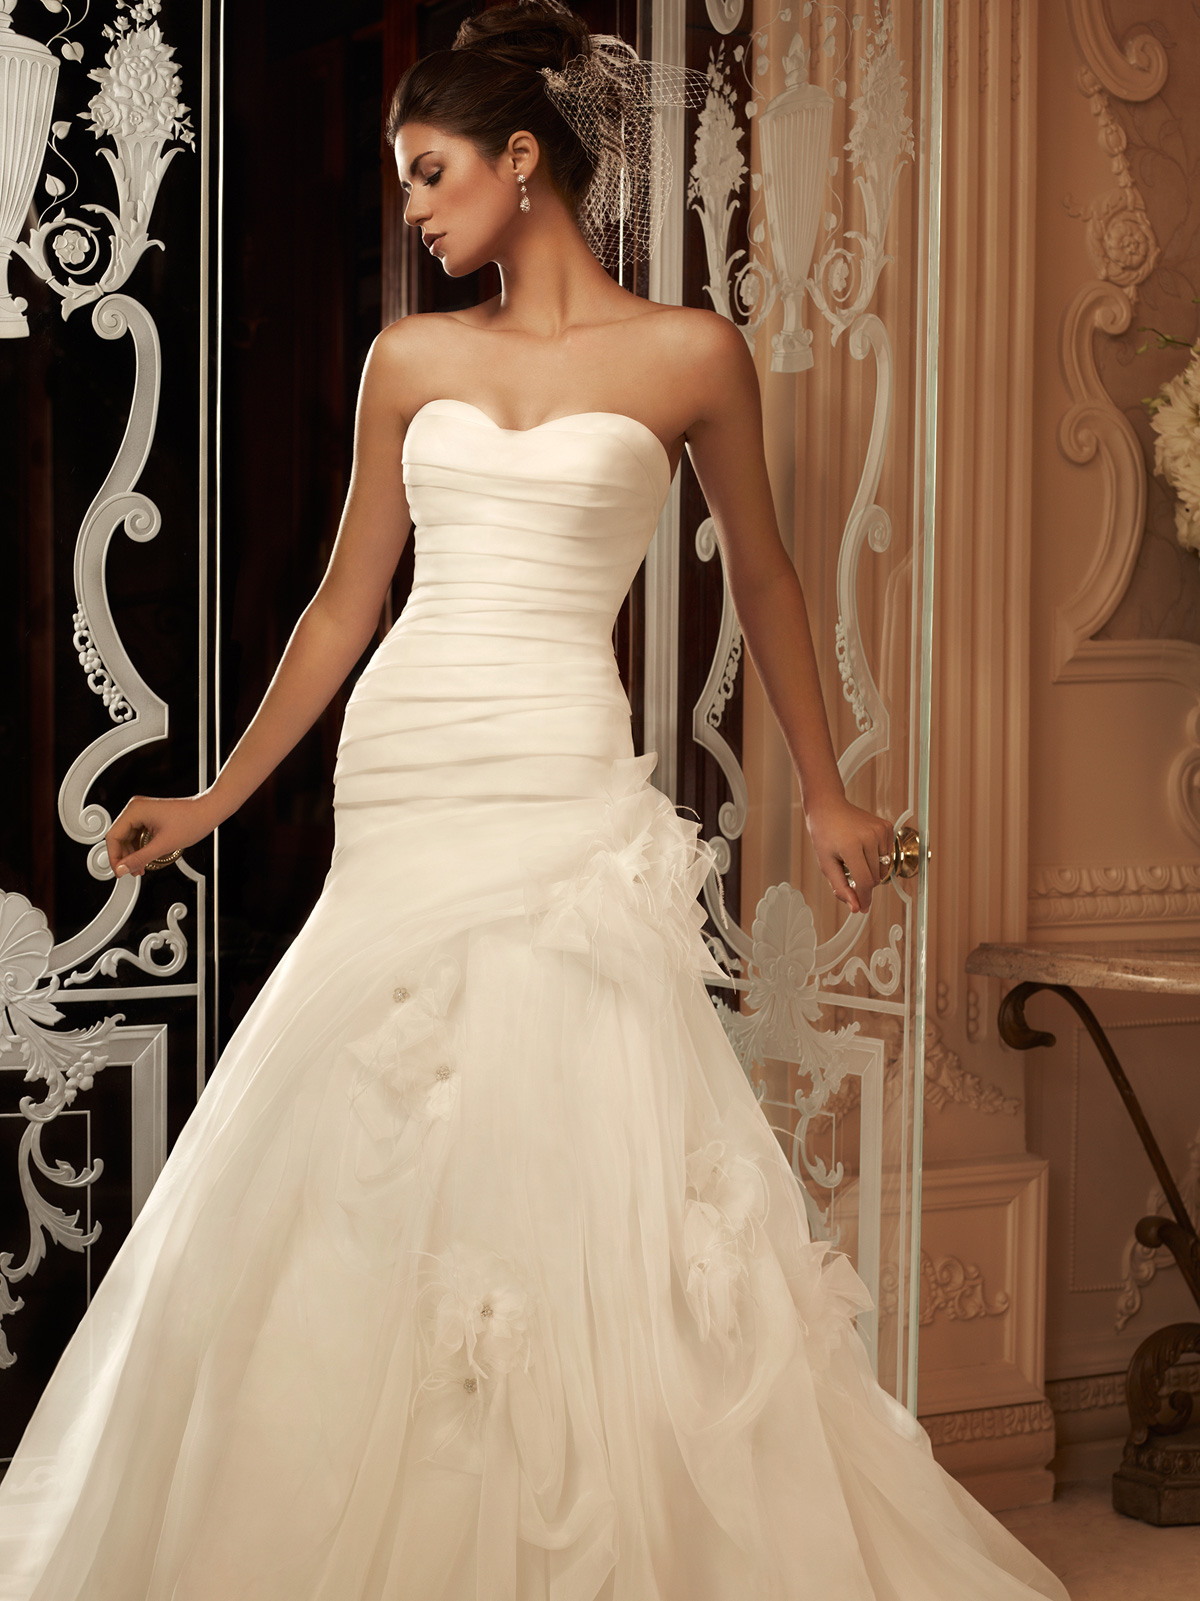 Sweetheart Fit And Flare Casablanca Bridal Gown 2105